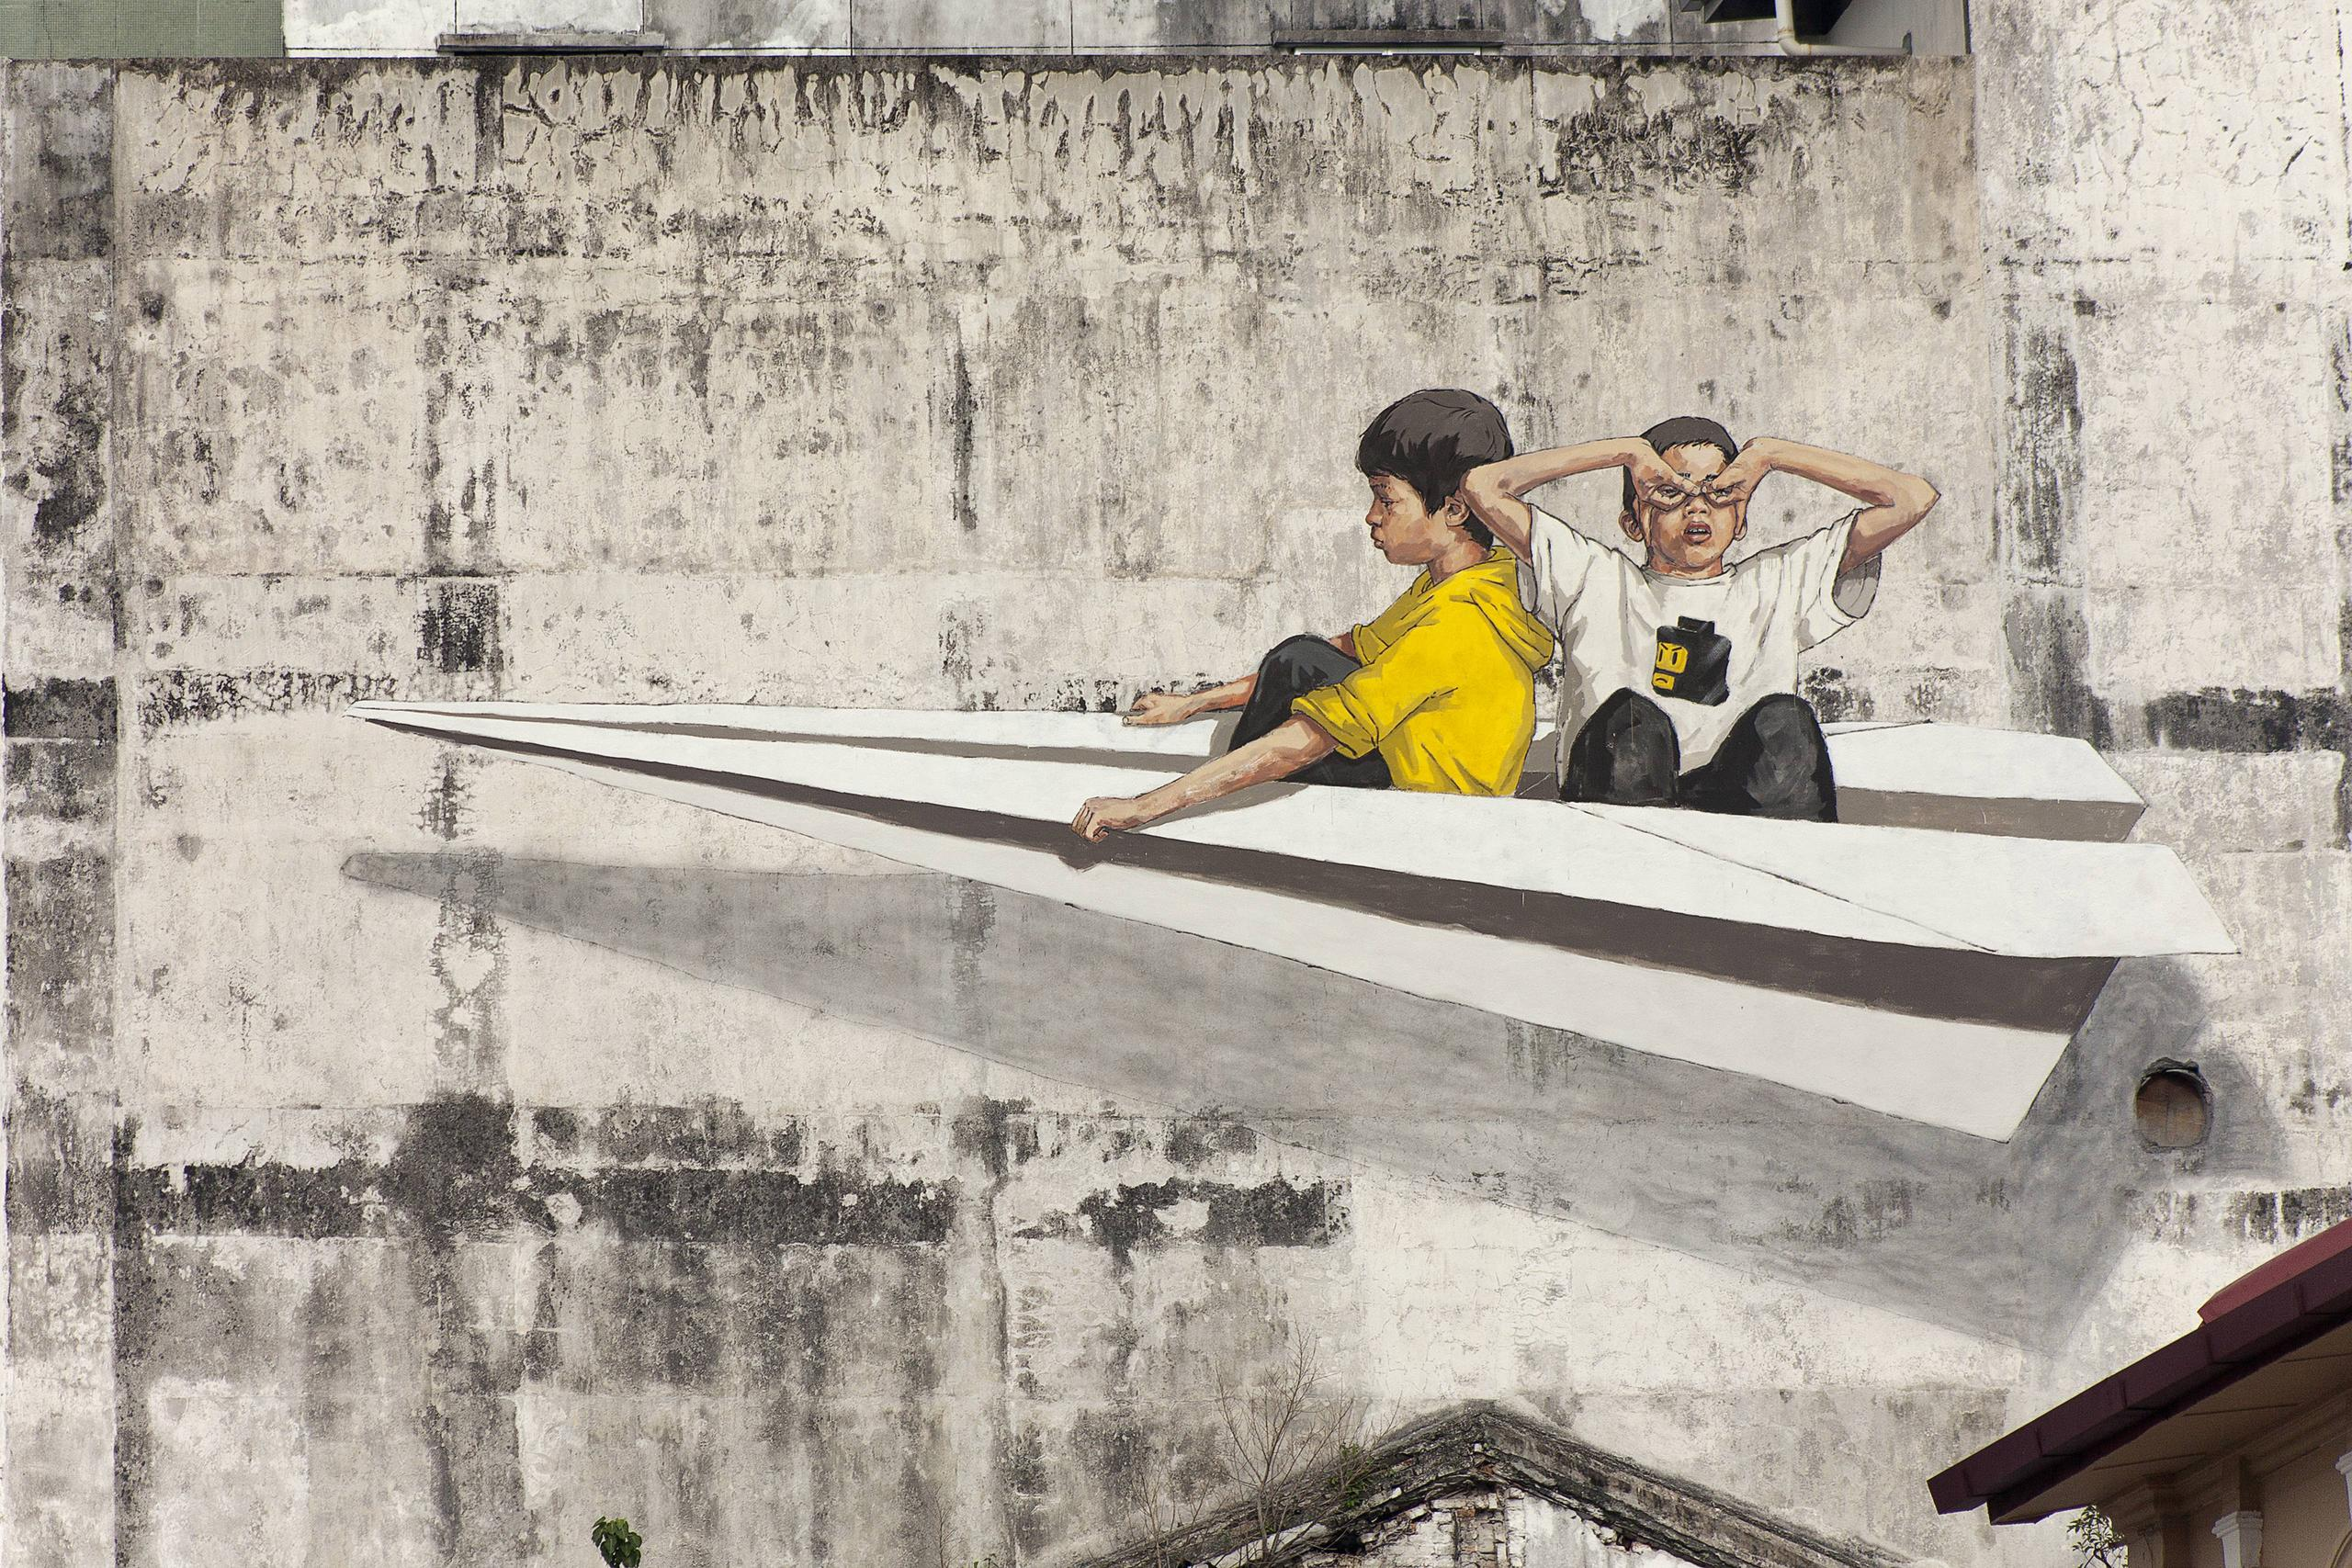 Paper plane mural by ernest zacharevic in old town ipoh image via oldtown white coffee malaysia